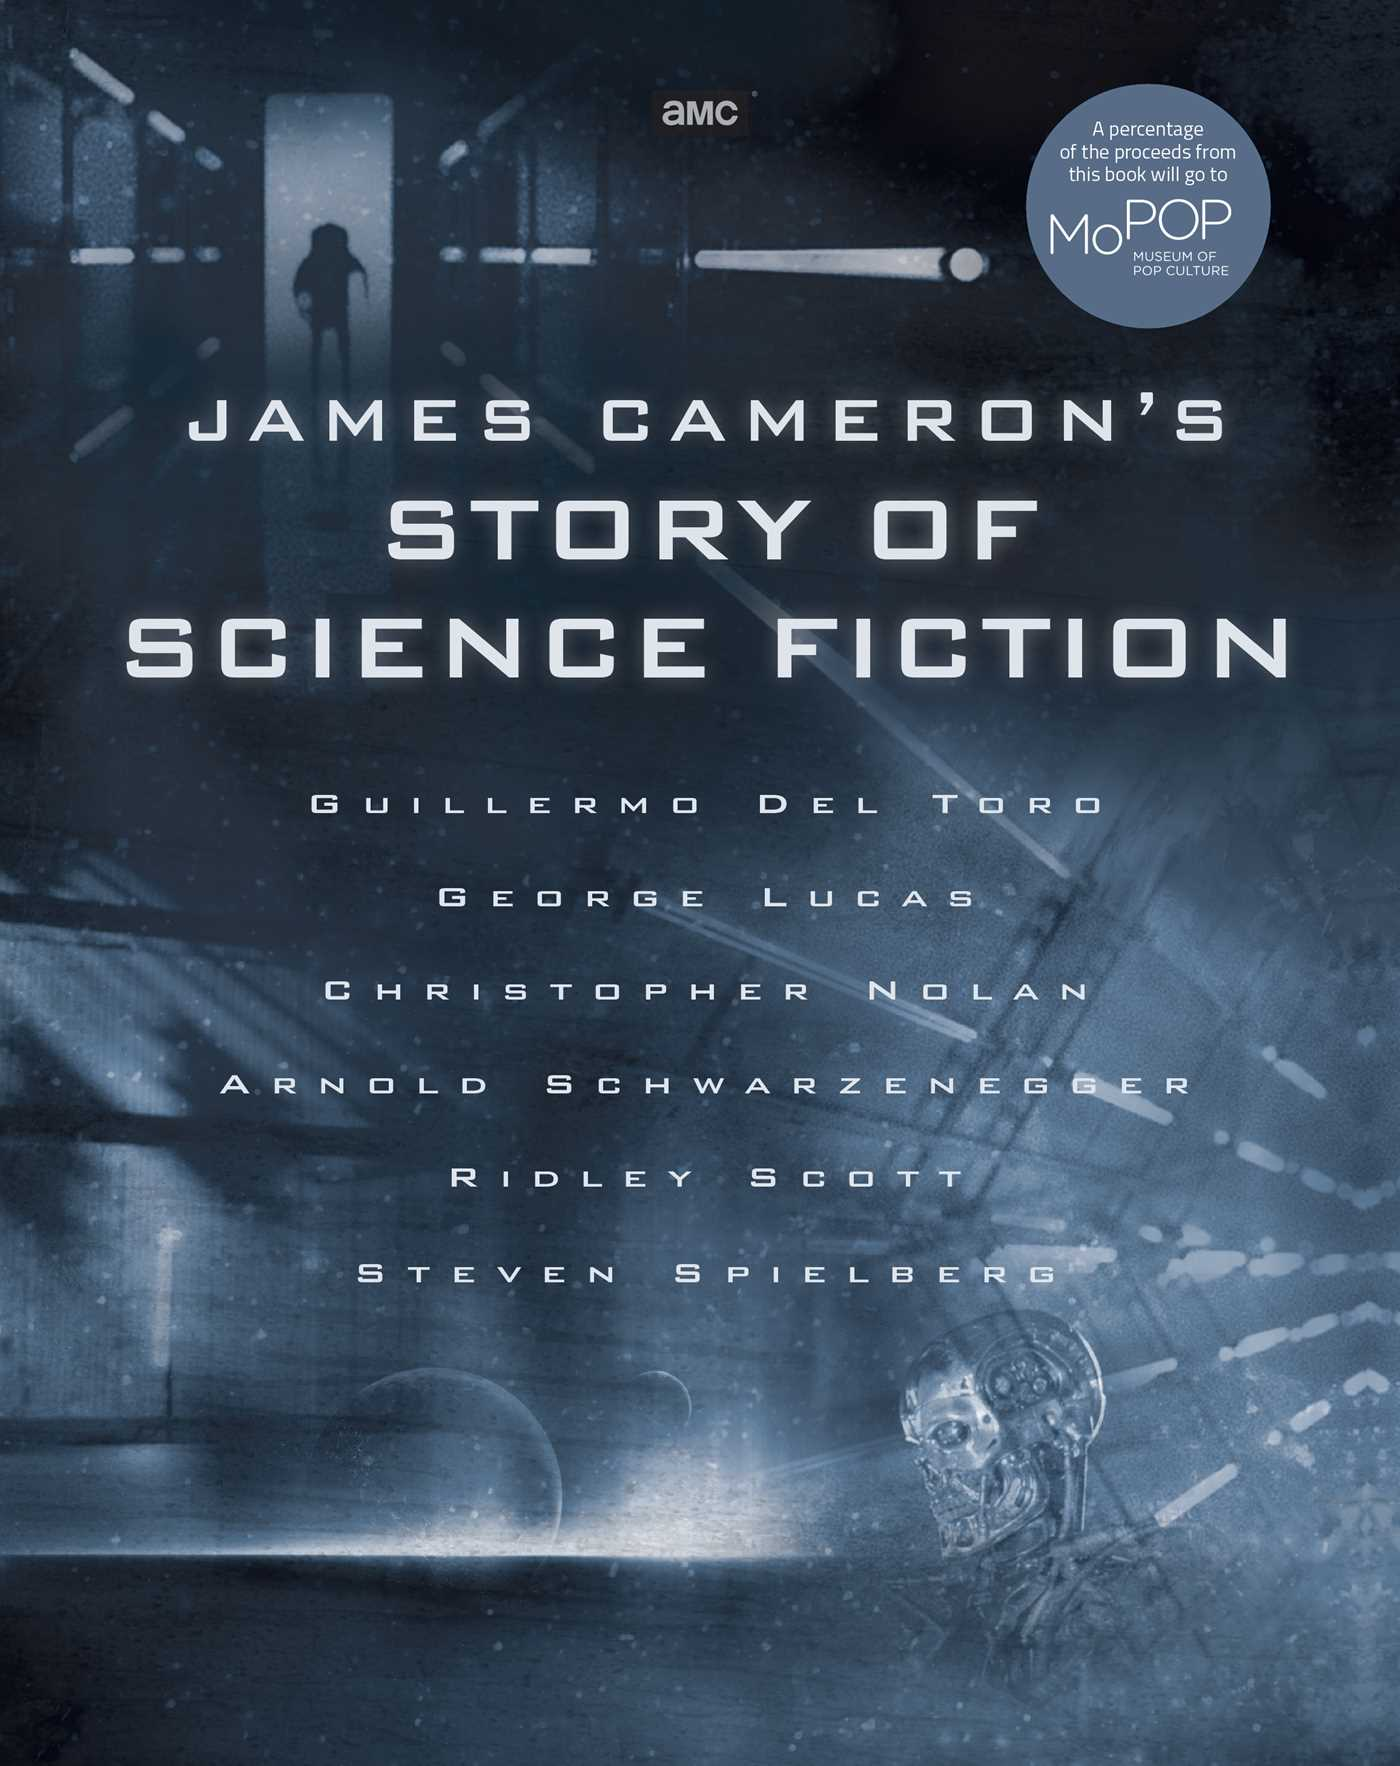 James camerons story of science fiction book by randall frakes james camerons story of science fiction 9781683834977 hr fandeluxe Images